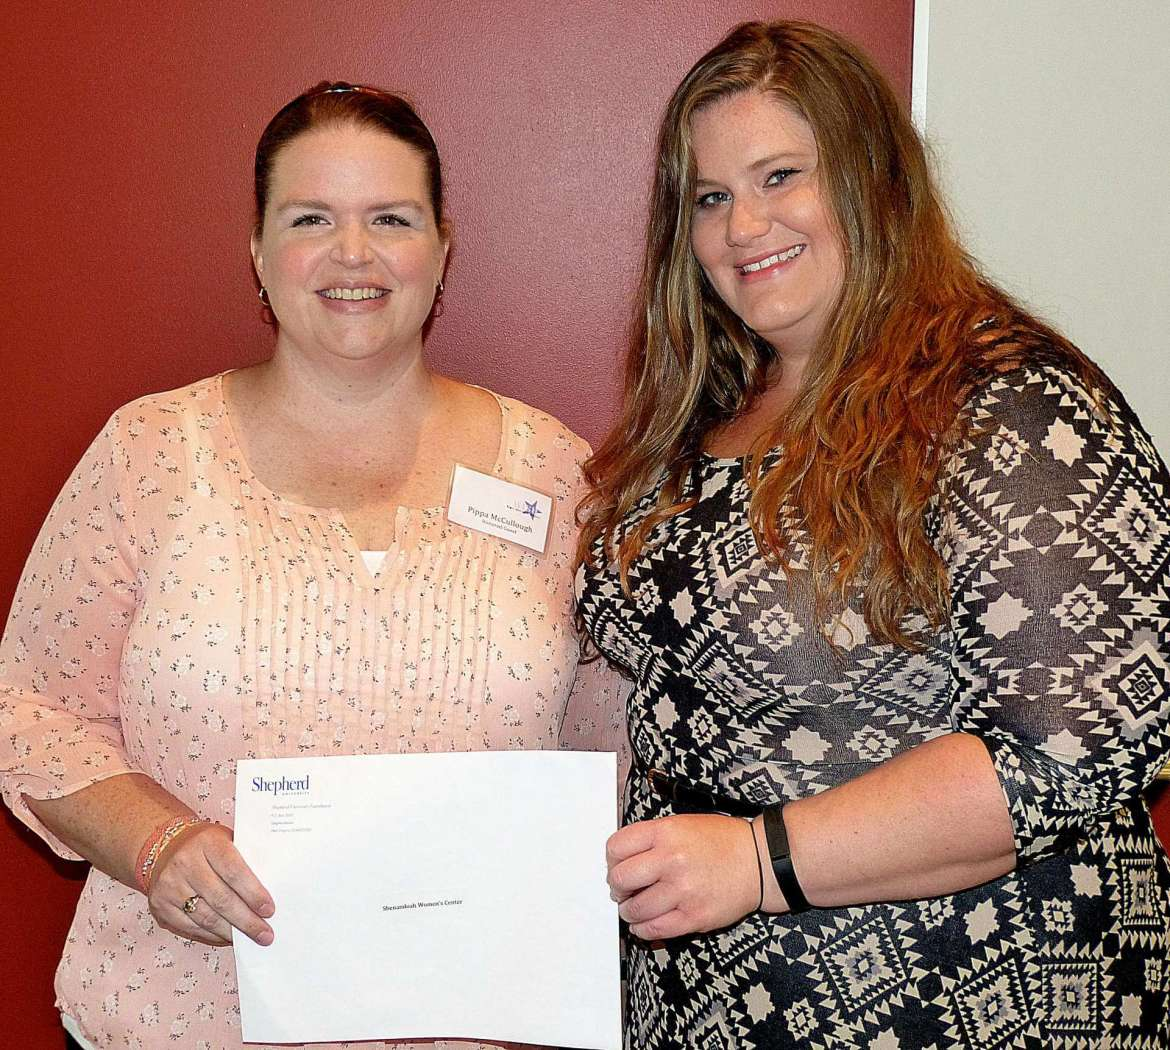 Shenandoah Women's Center, represented by (l. to r.) Pippa McCullough and Katie Spriggs.